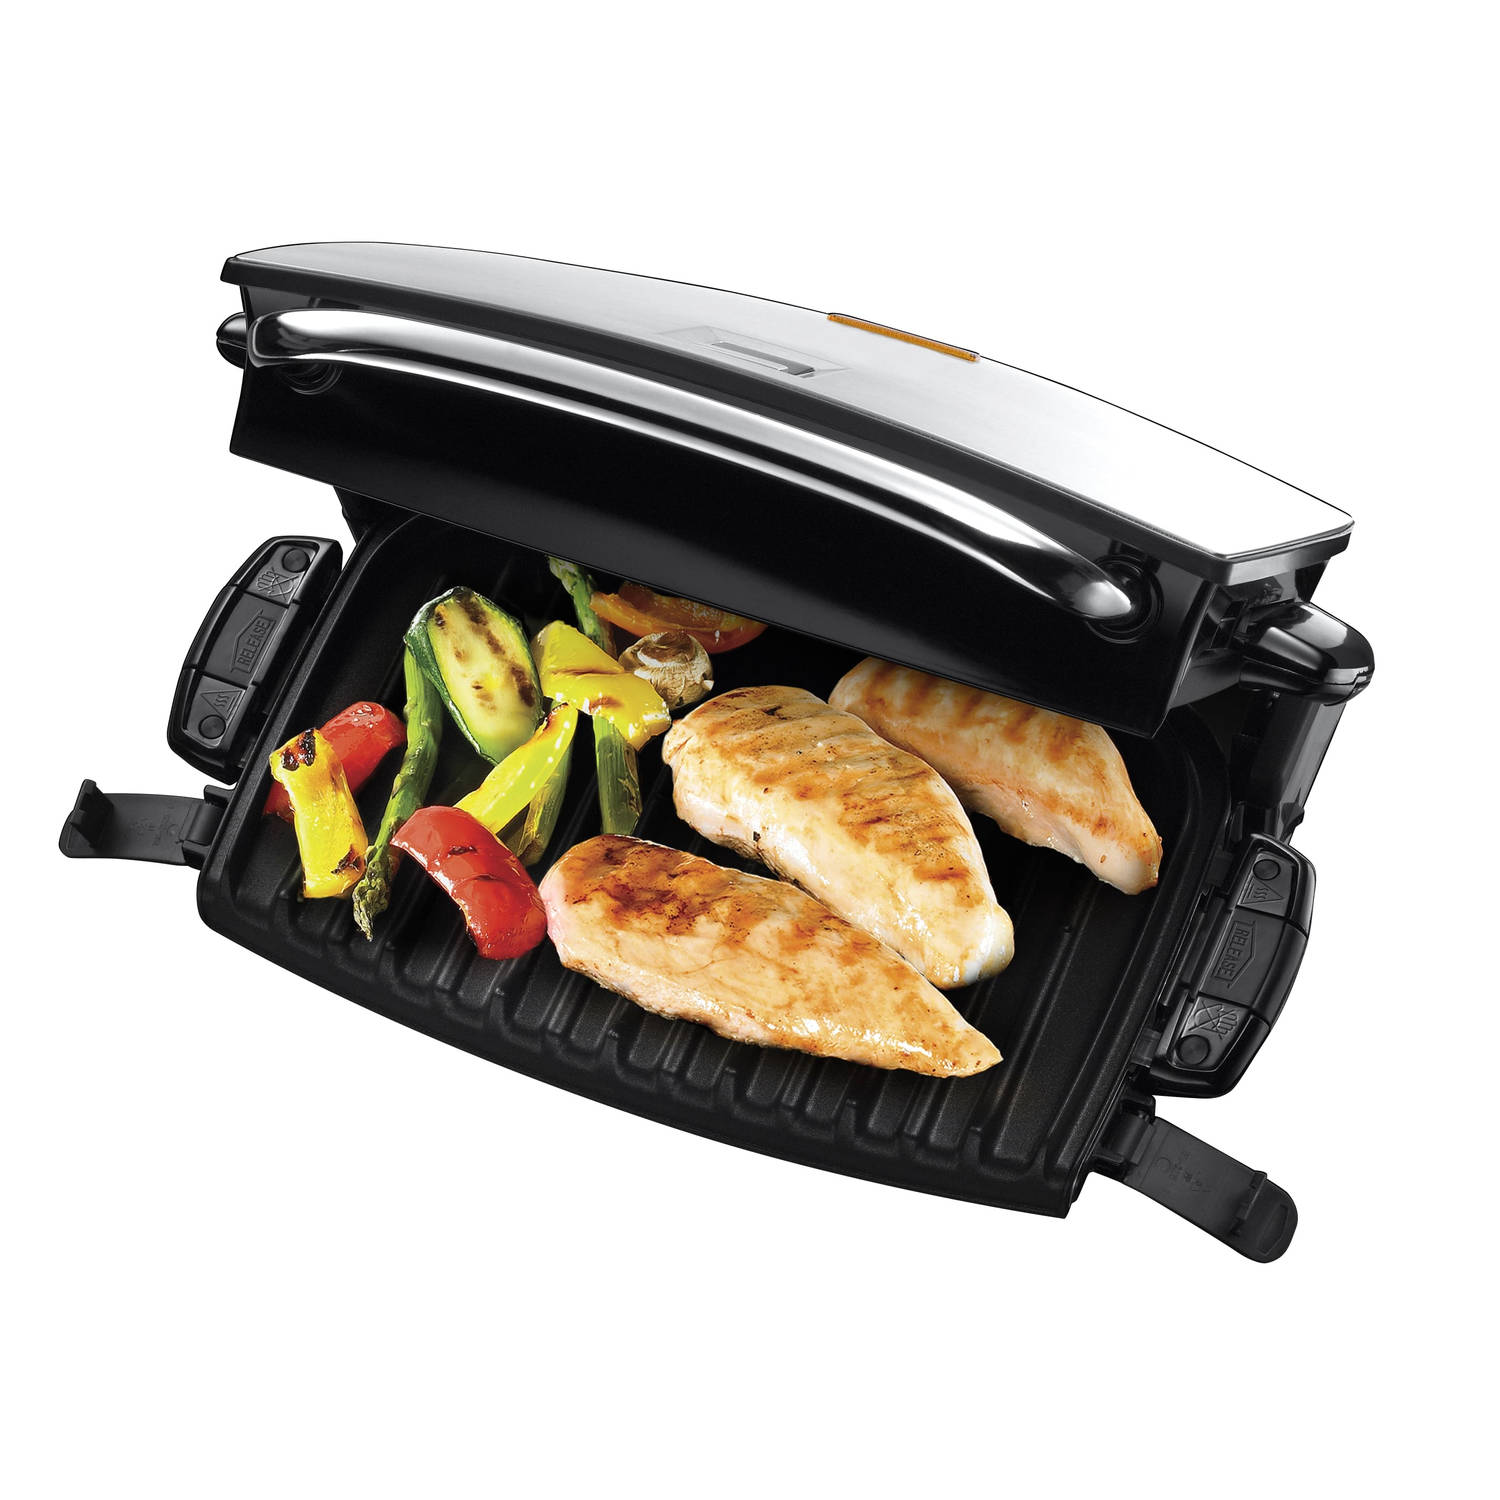 George Foreman contactgrill Grill & Melt 14525-56